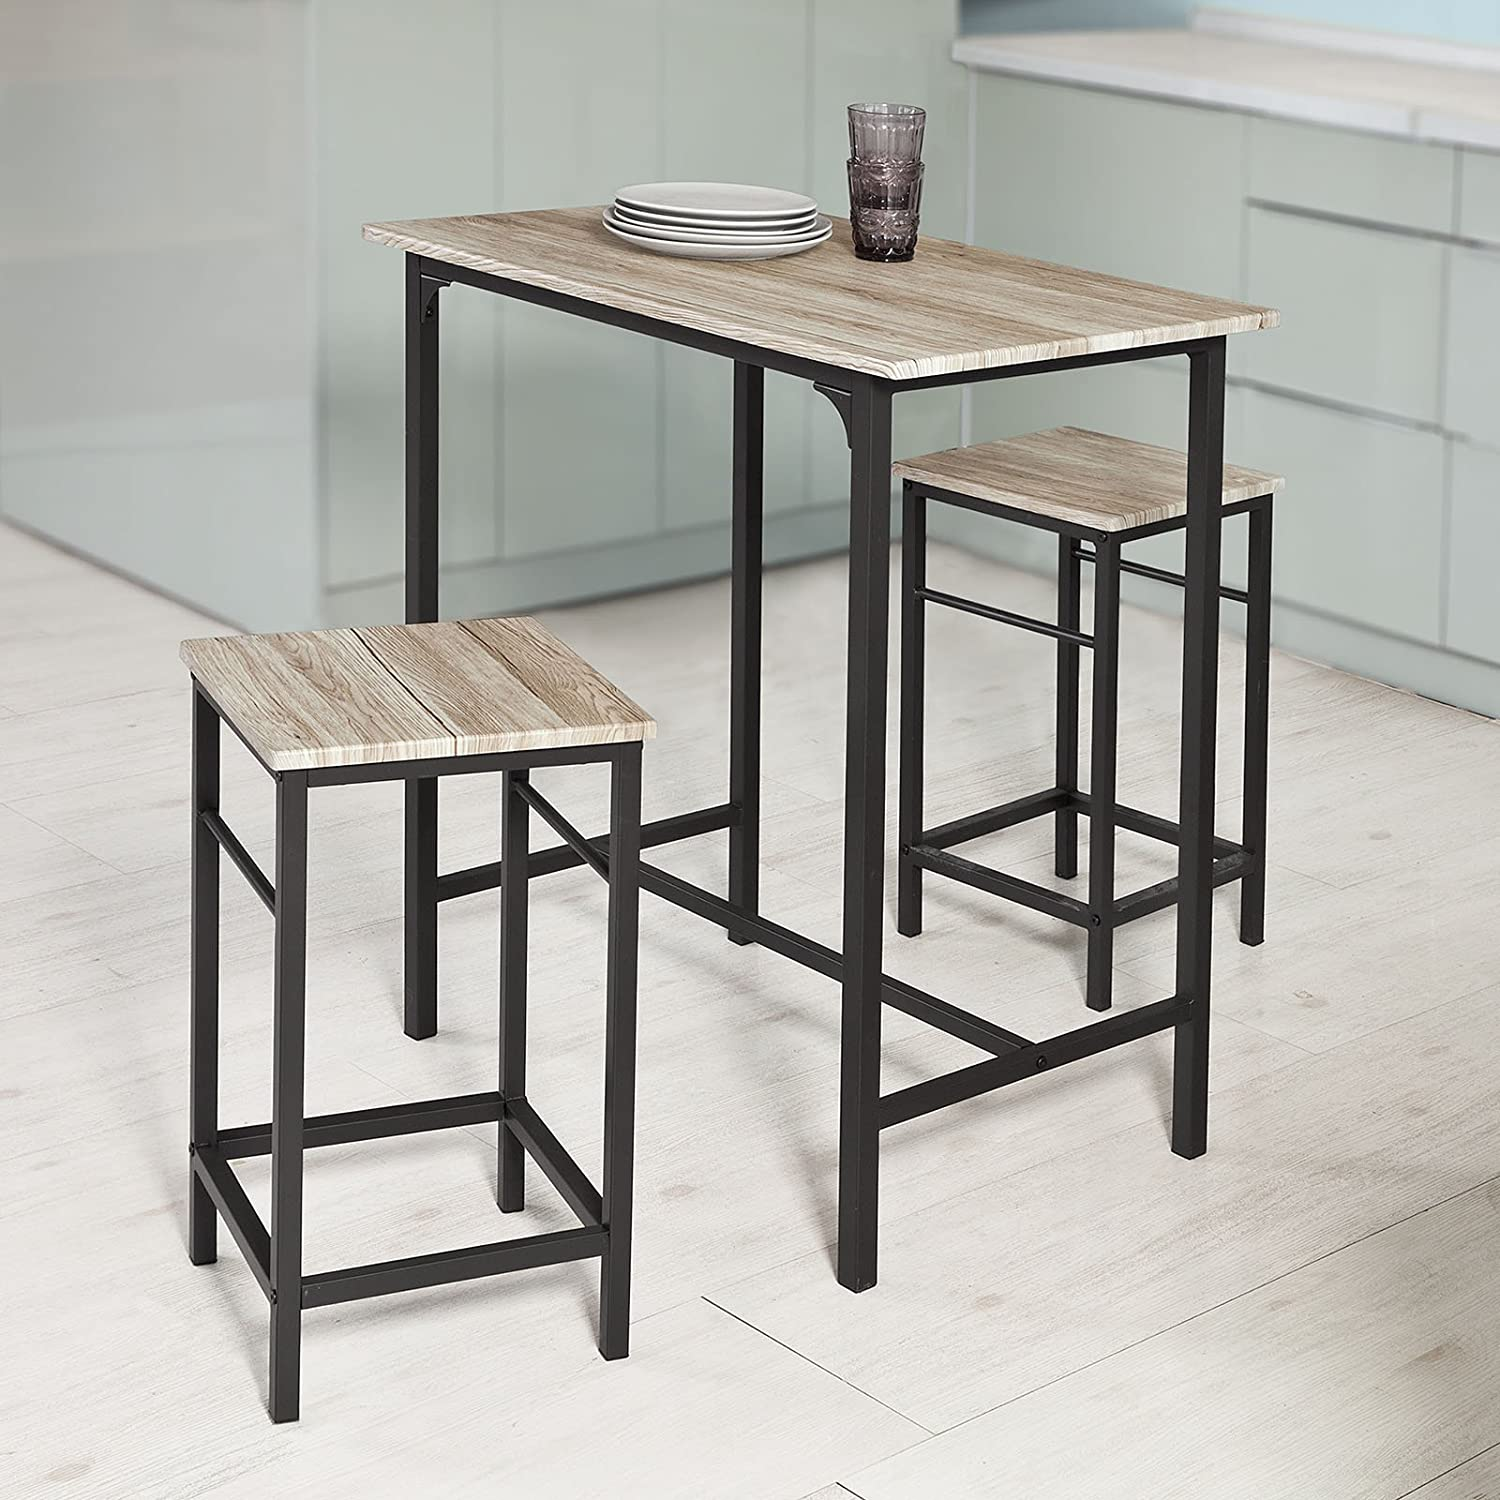 Sobuy Ogt11 N Set De 1 Table 4 Tabourets Ensemble Table De Bar